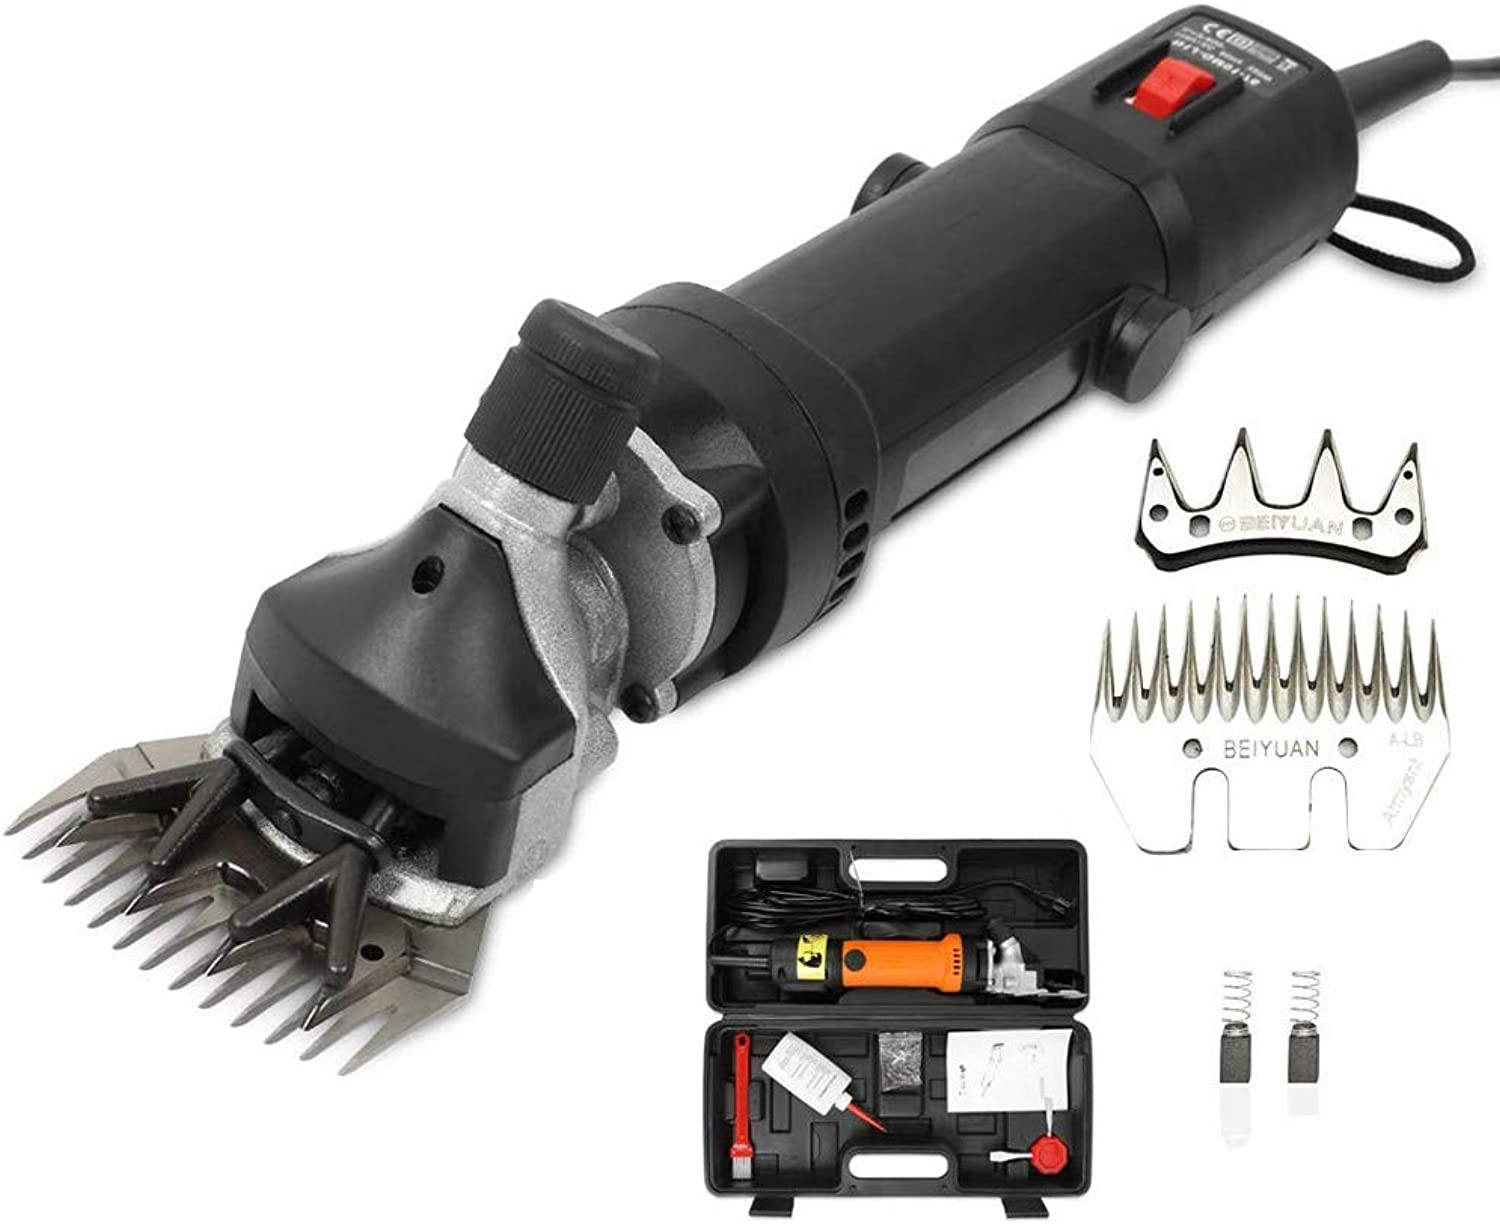 Electric Sheep Shearing Clippers, 690W Professional Electric Sheep Shears Scheren and Livestock Shears & Grooming Supplies, 6Speed 13 Straight Teeth,Black,220V